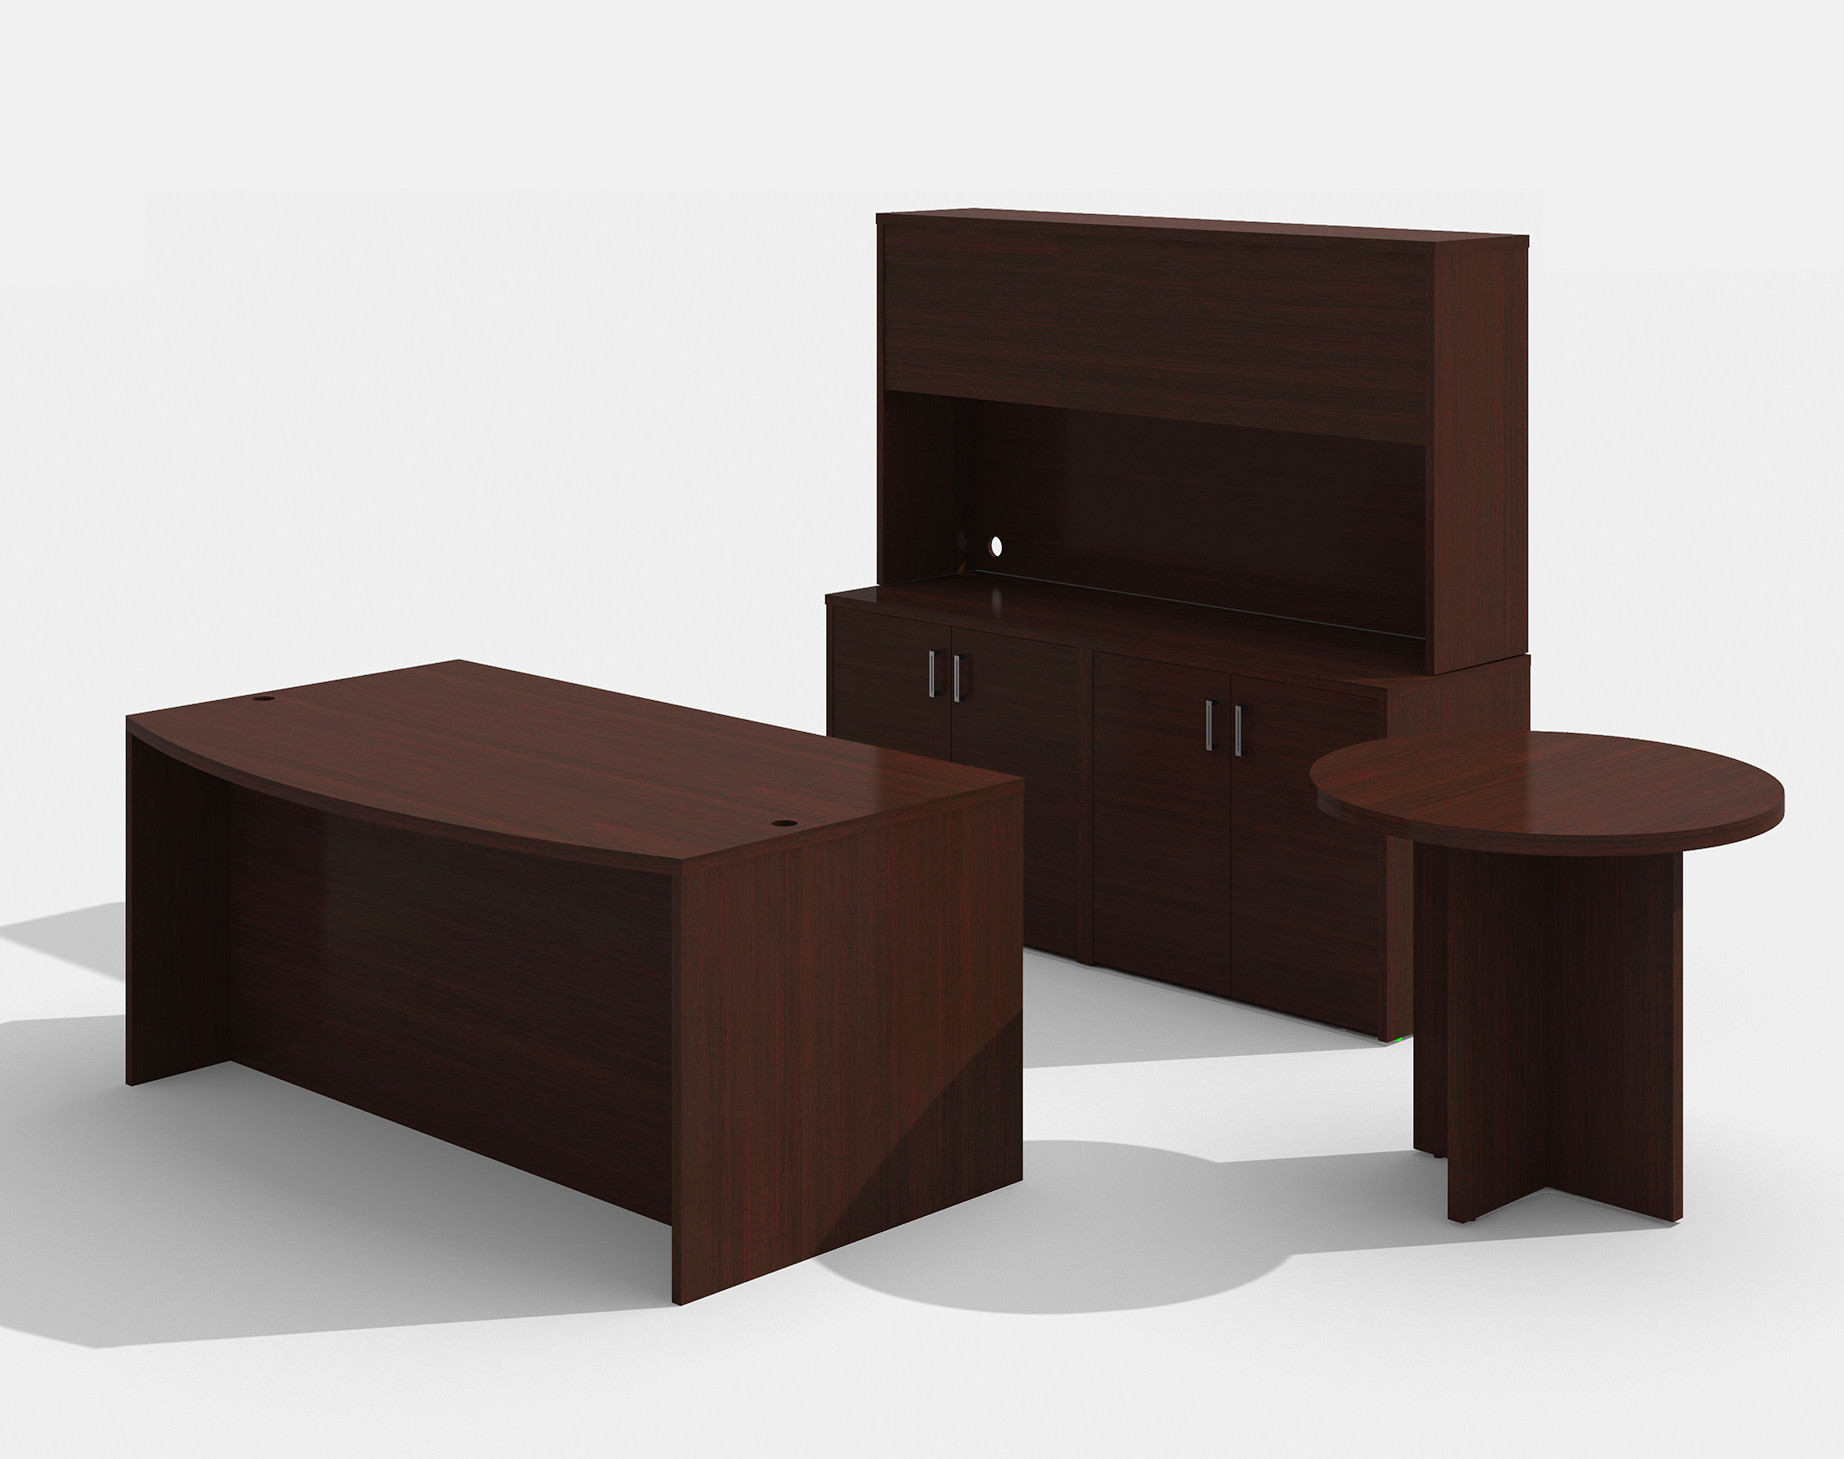 am-383n amber desk set with a722 side table in mahogany